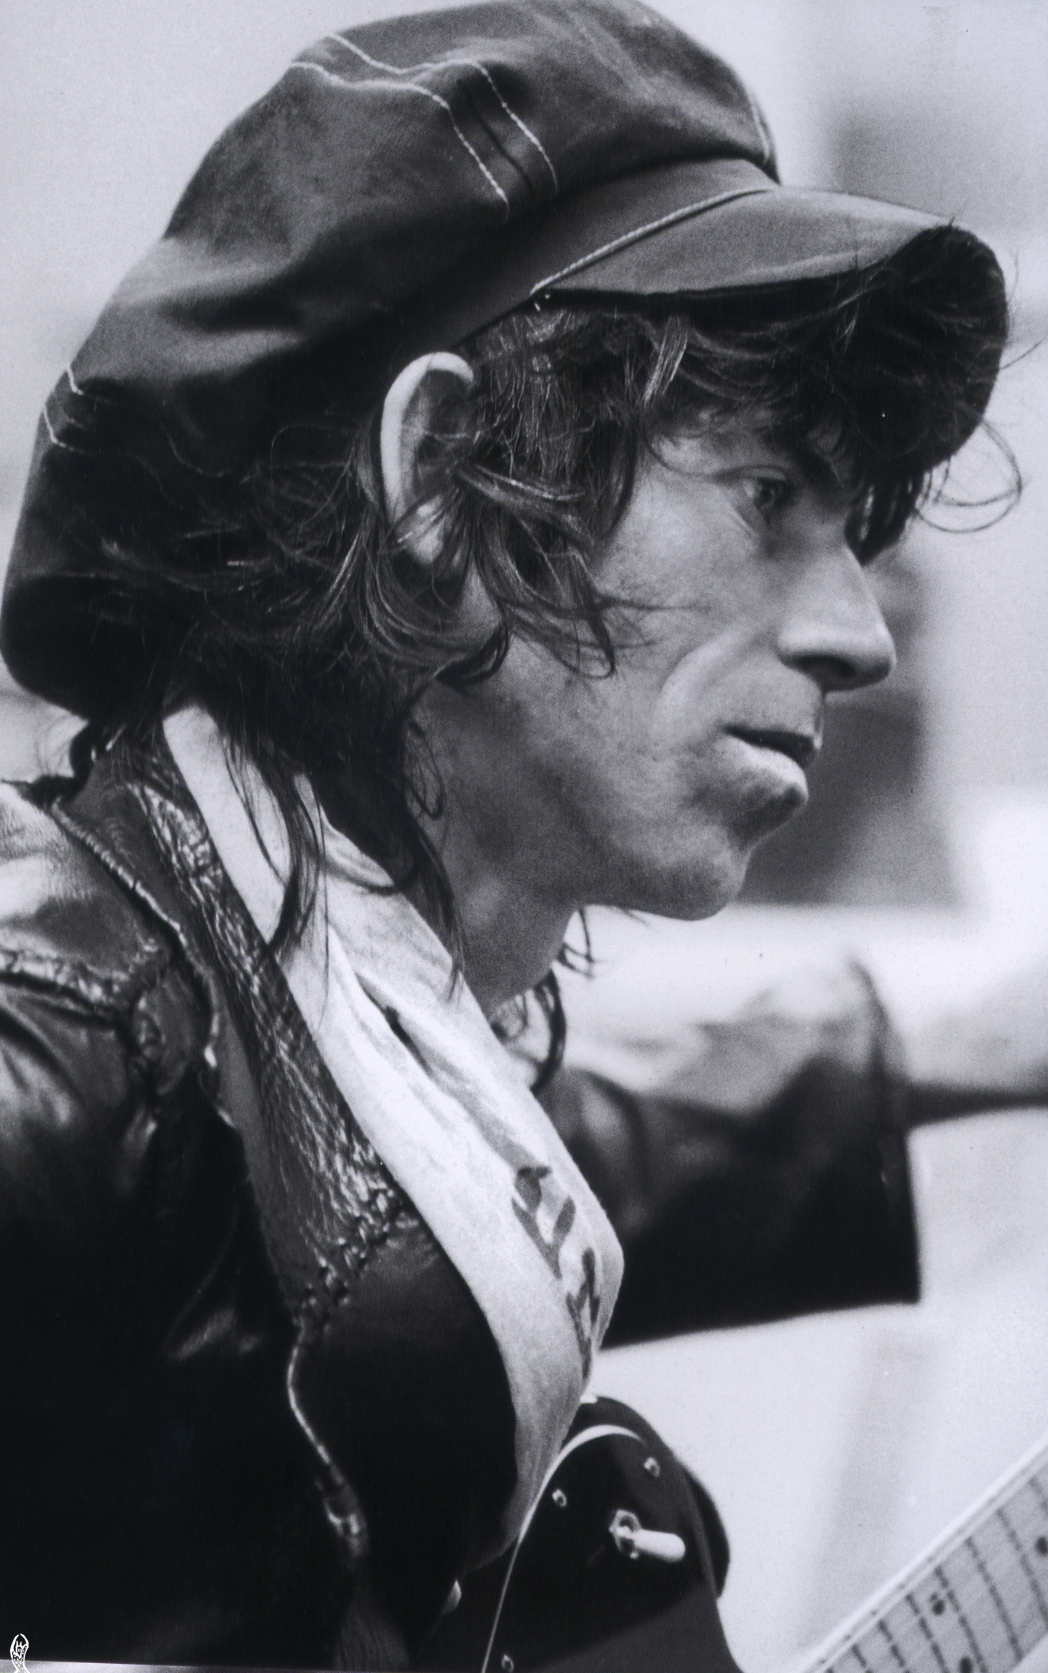 Keith Richards backstage during the Tour of the Americas, 1975. © Photo by Christopher Simon Sykes.